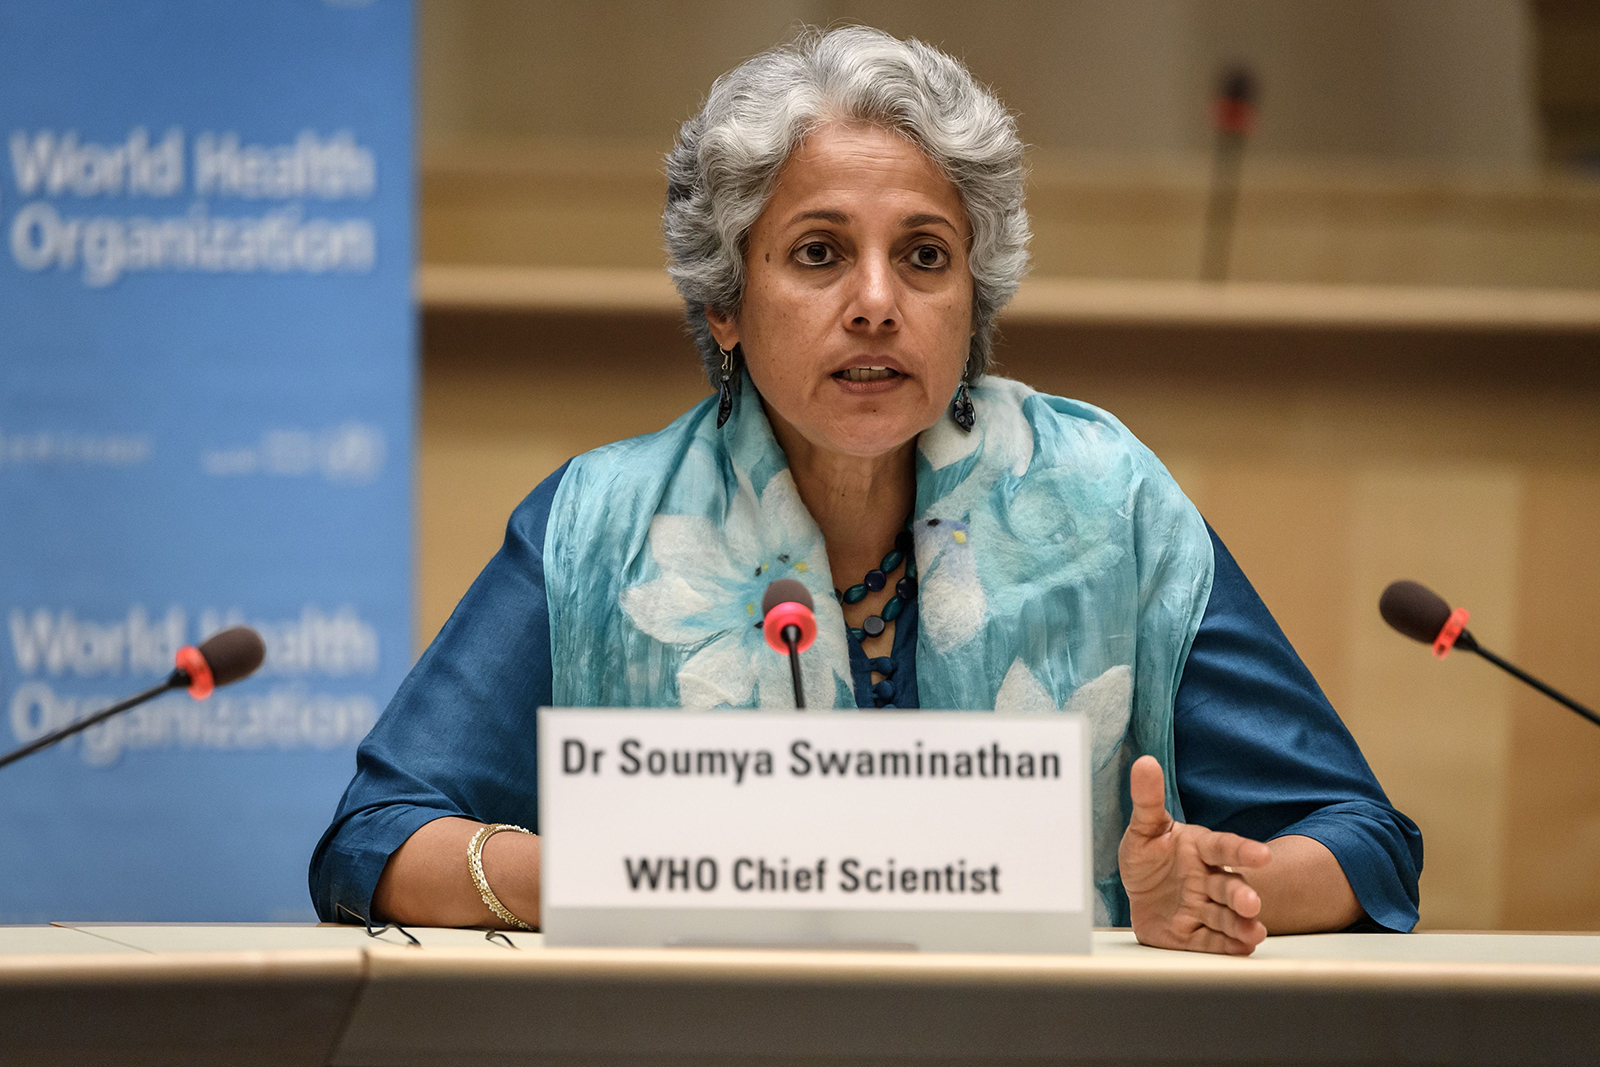 World Health Organization (WHO) Chief Scientist Soumya Swaminathan attends a news conference at WHO headquarters in Geneva, Switzerland, on July 3.